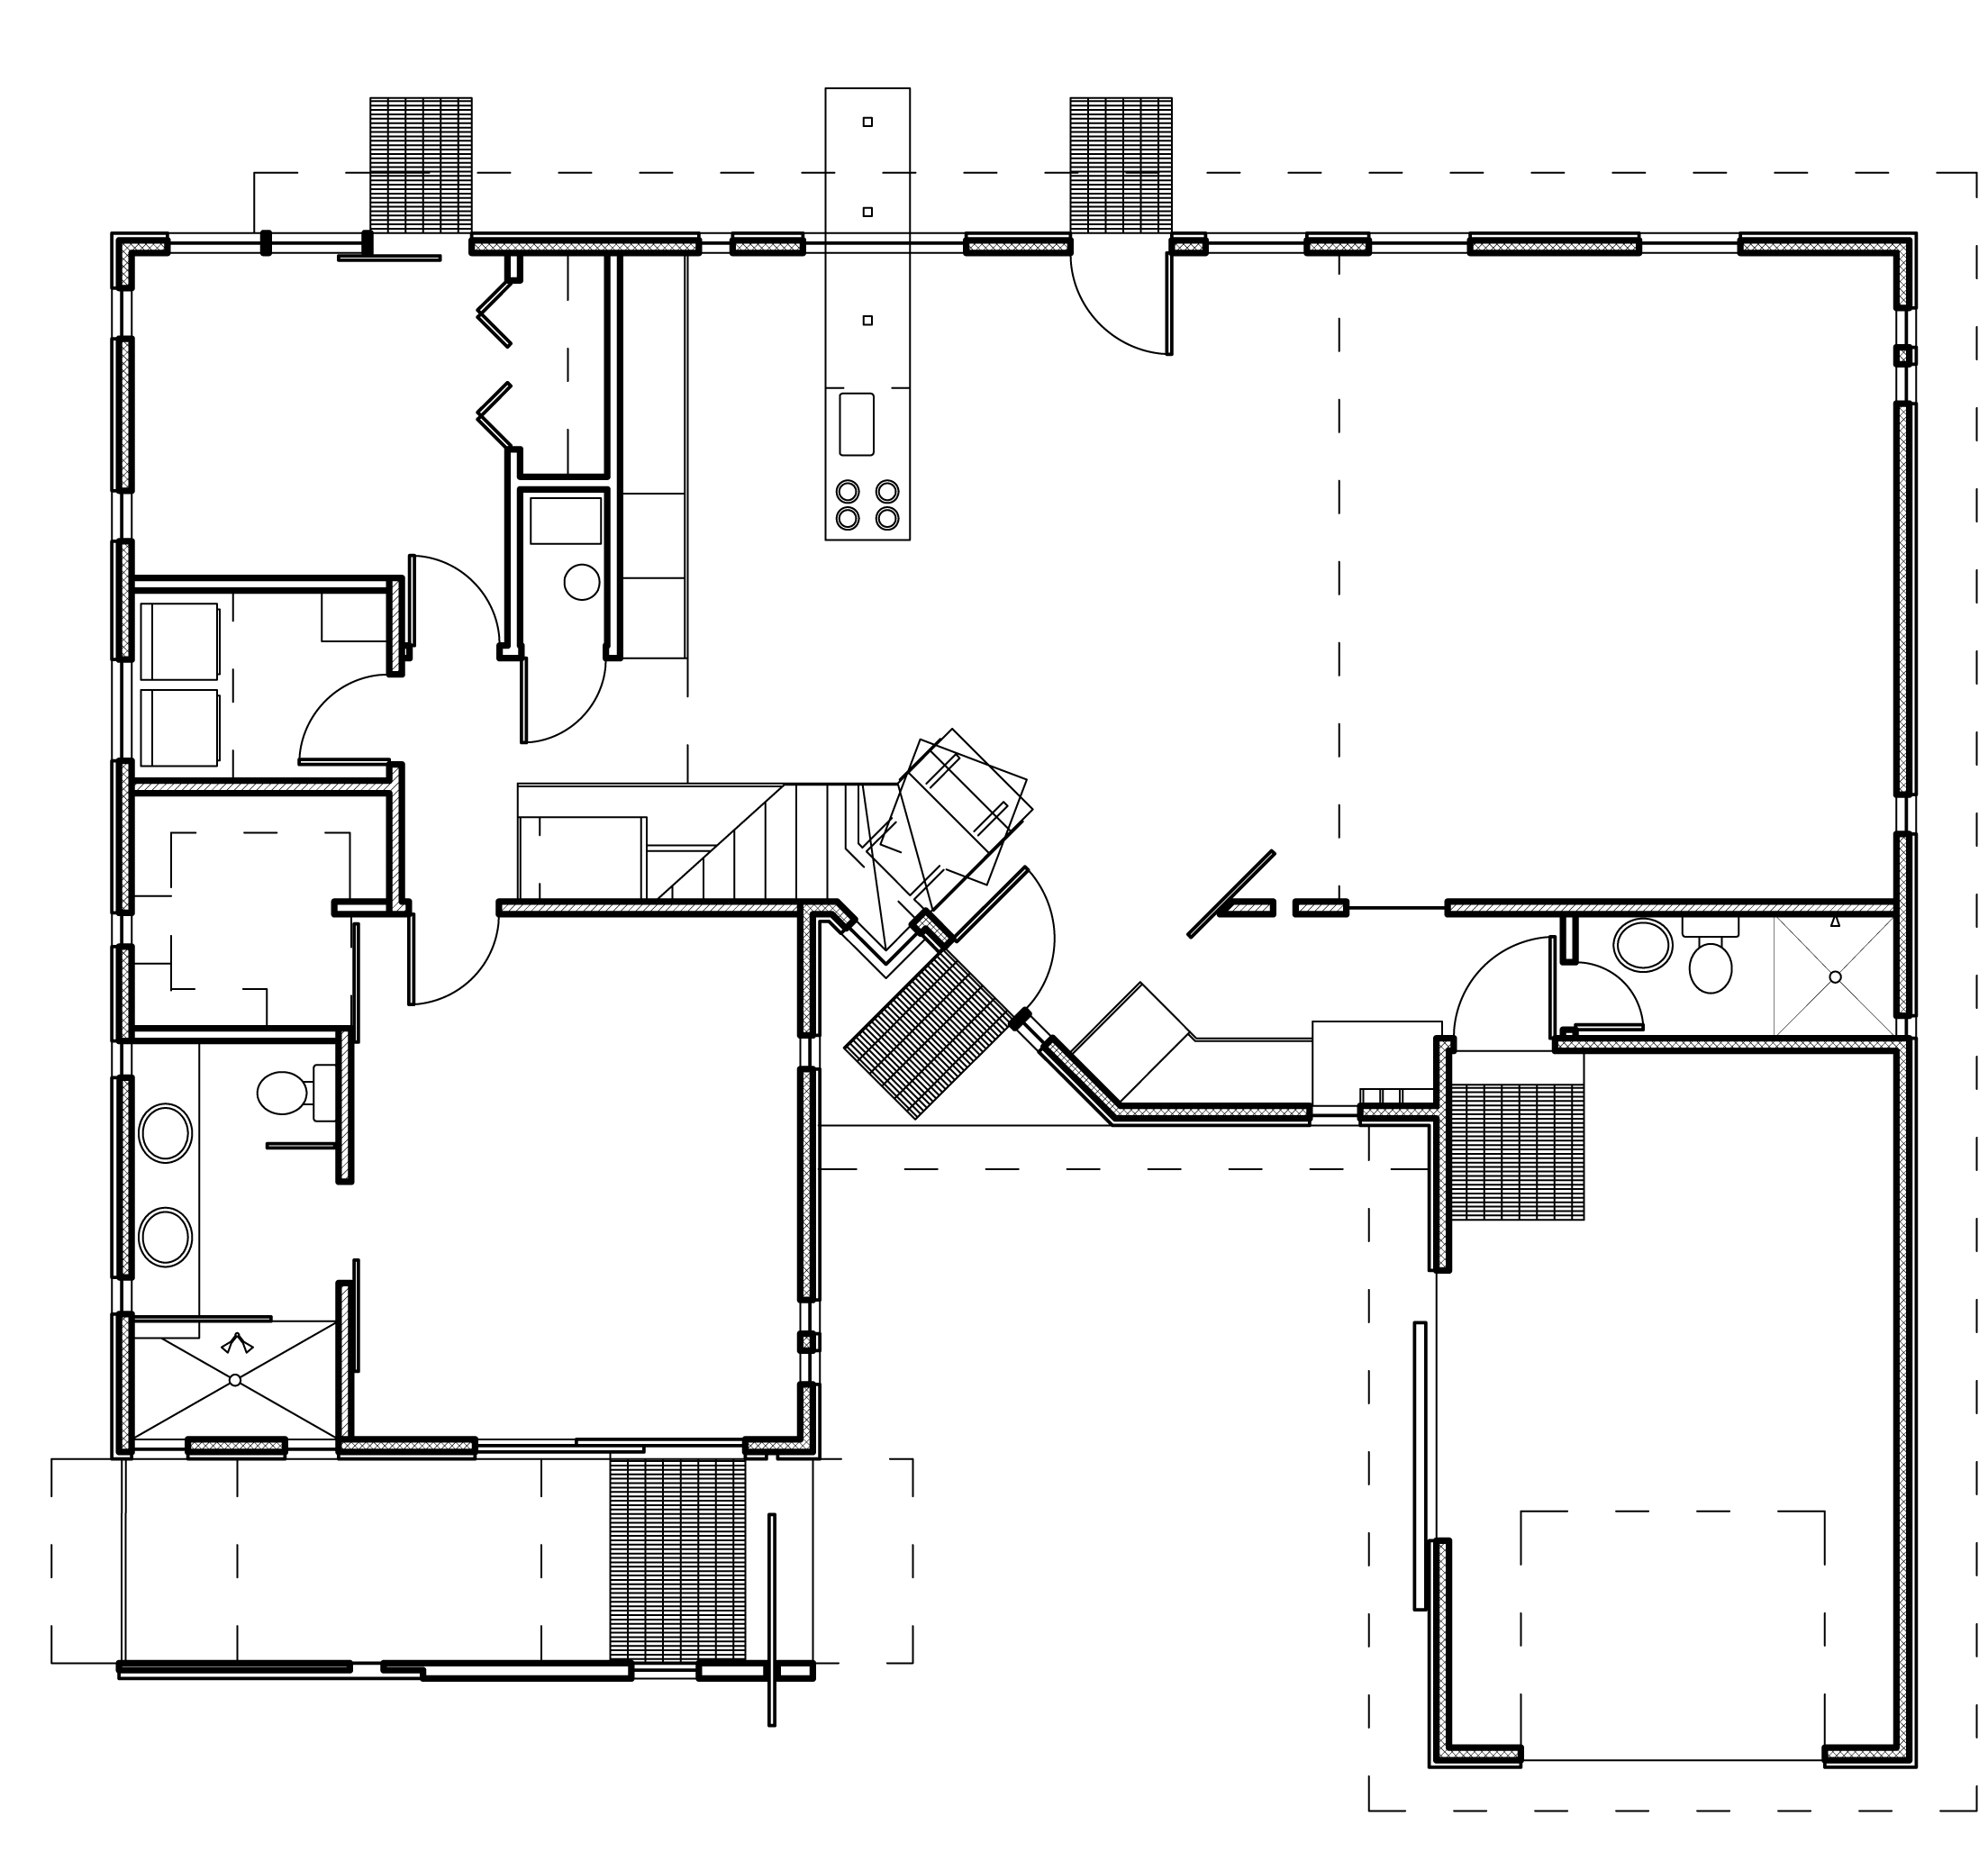 Modern house plans contemporary home designs floor plan 03 for Modern floor plans